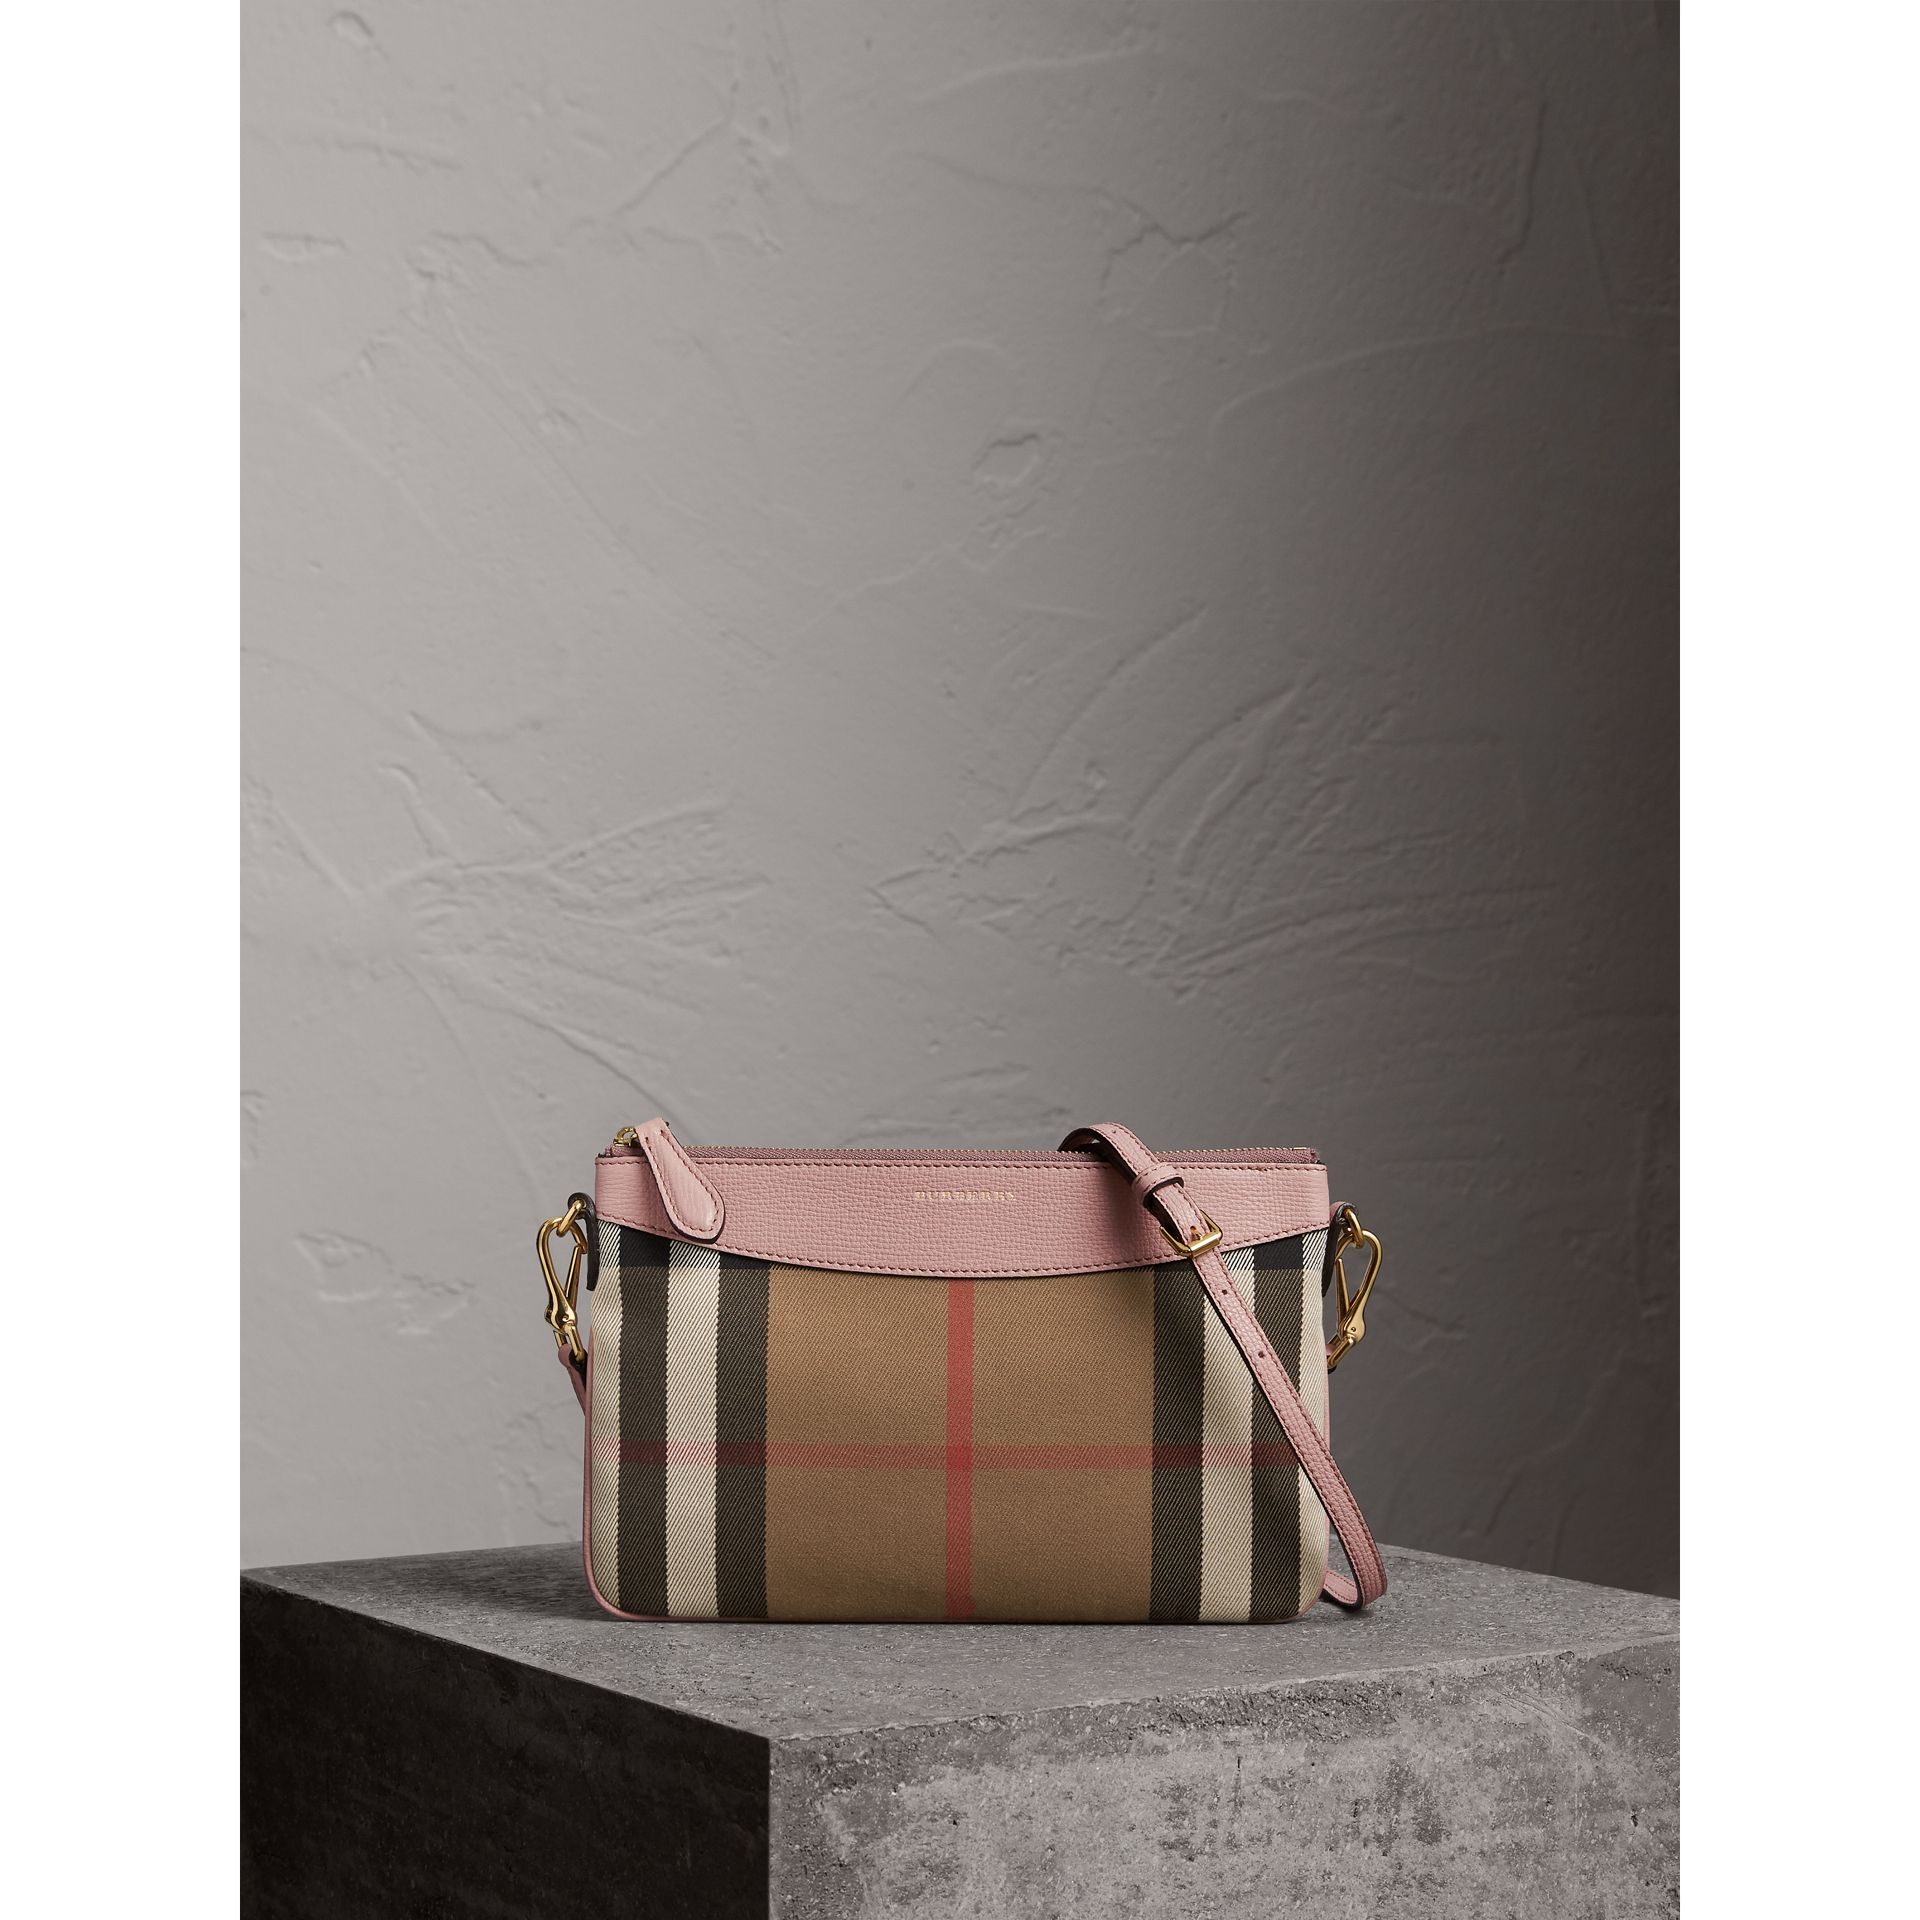 House Check and Leather Clutch Bag in Pale Orchid - Women | Burberry Singapore - gallery image 0